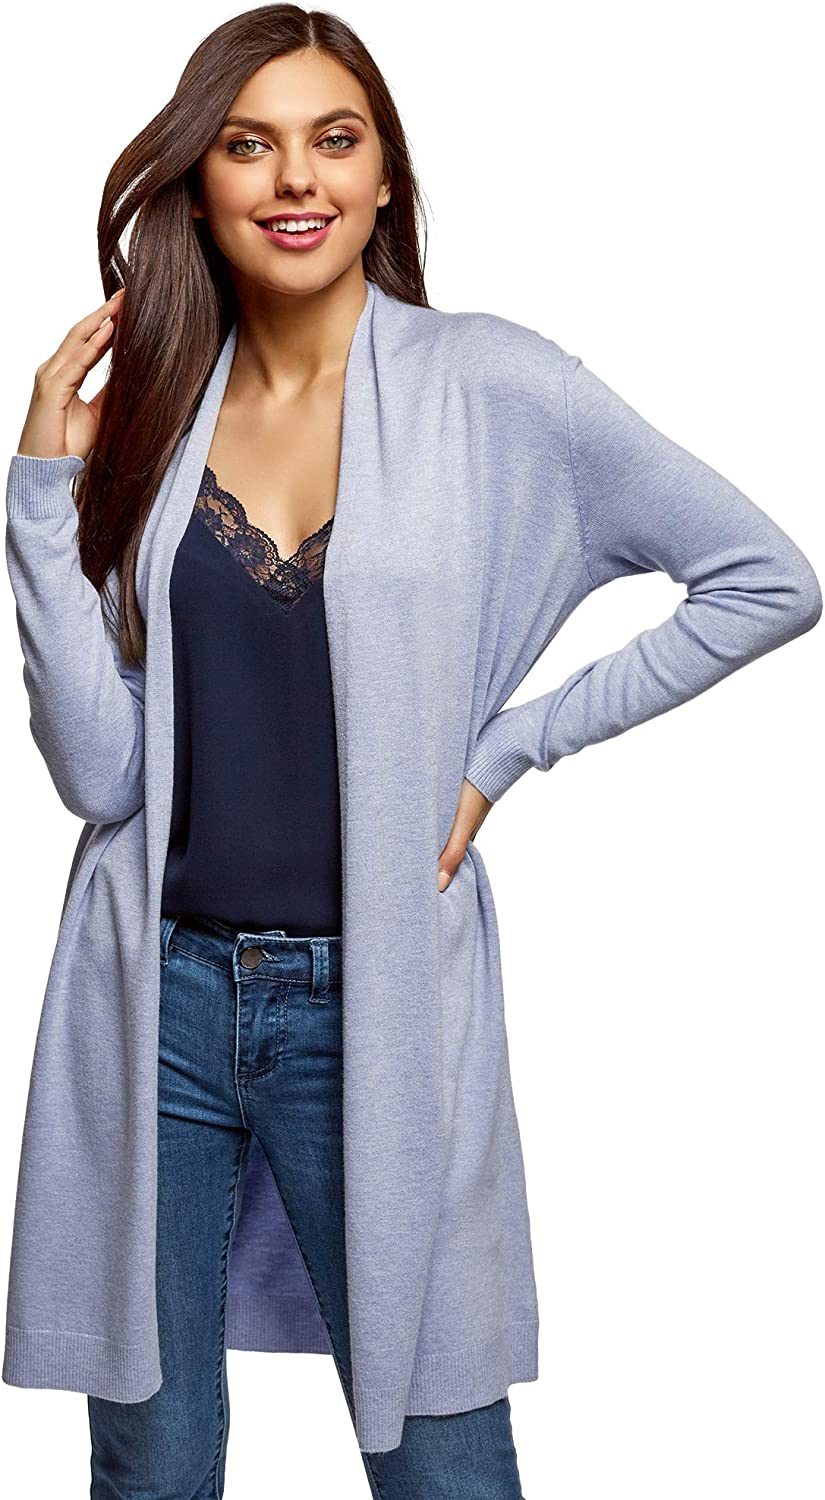 Oodji Collection Women's Long No Closure Cardigan